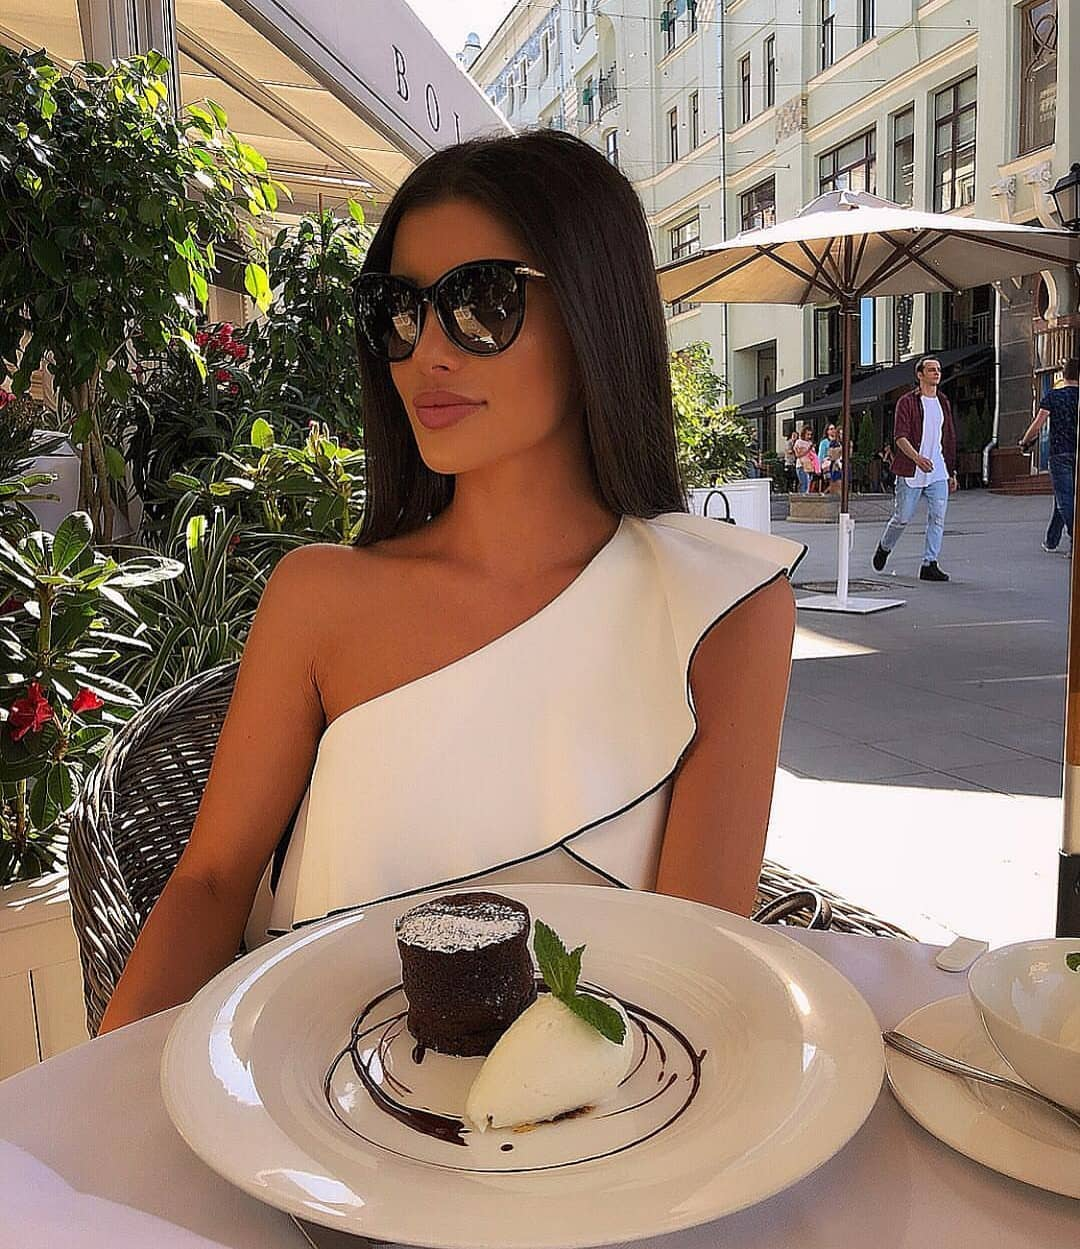 Italian Woman White Dress Outfit Idea For Summer 2020